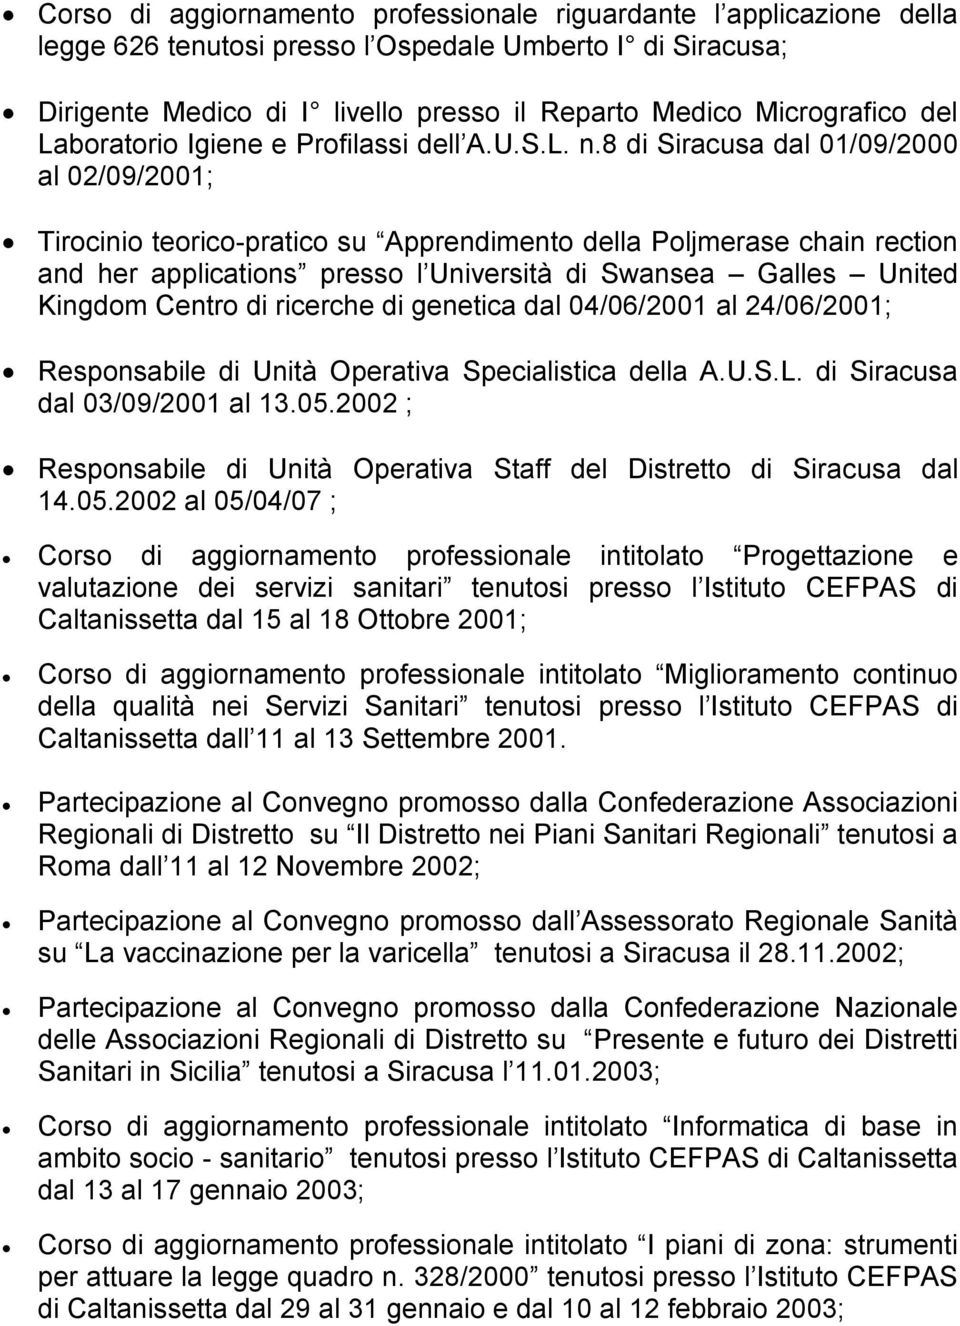 8 di Siracusa dal 01/09/2000 al 02/09/2001; Tirocinio teorico-pratico su Apprendimento della Poljmerase chain rection and her applications presso l Università di Swansea Galles United Kingdom Centro